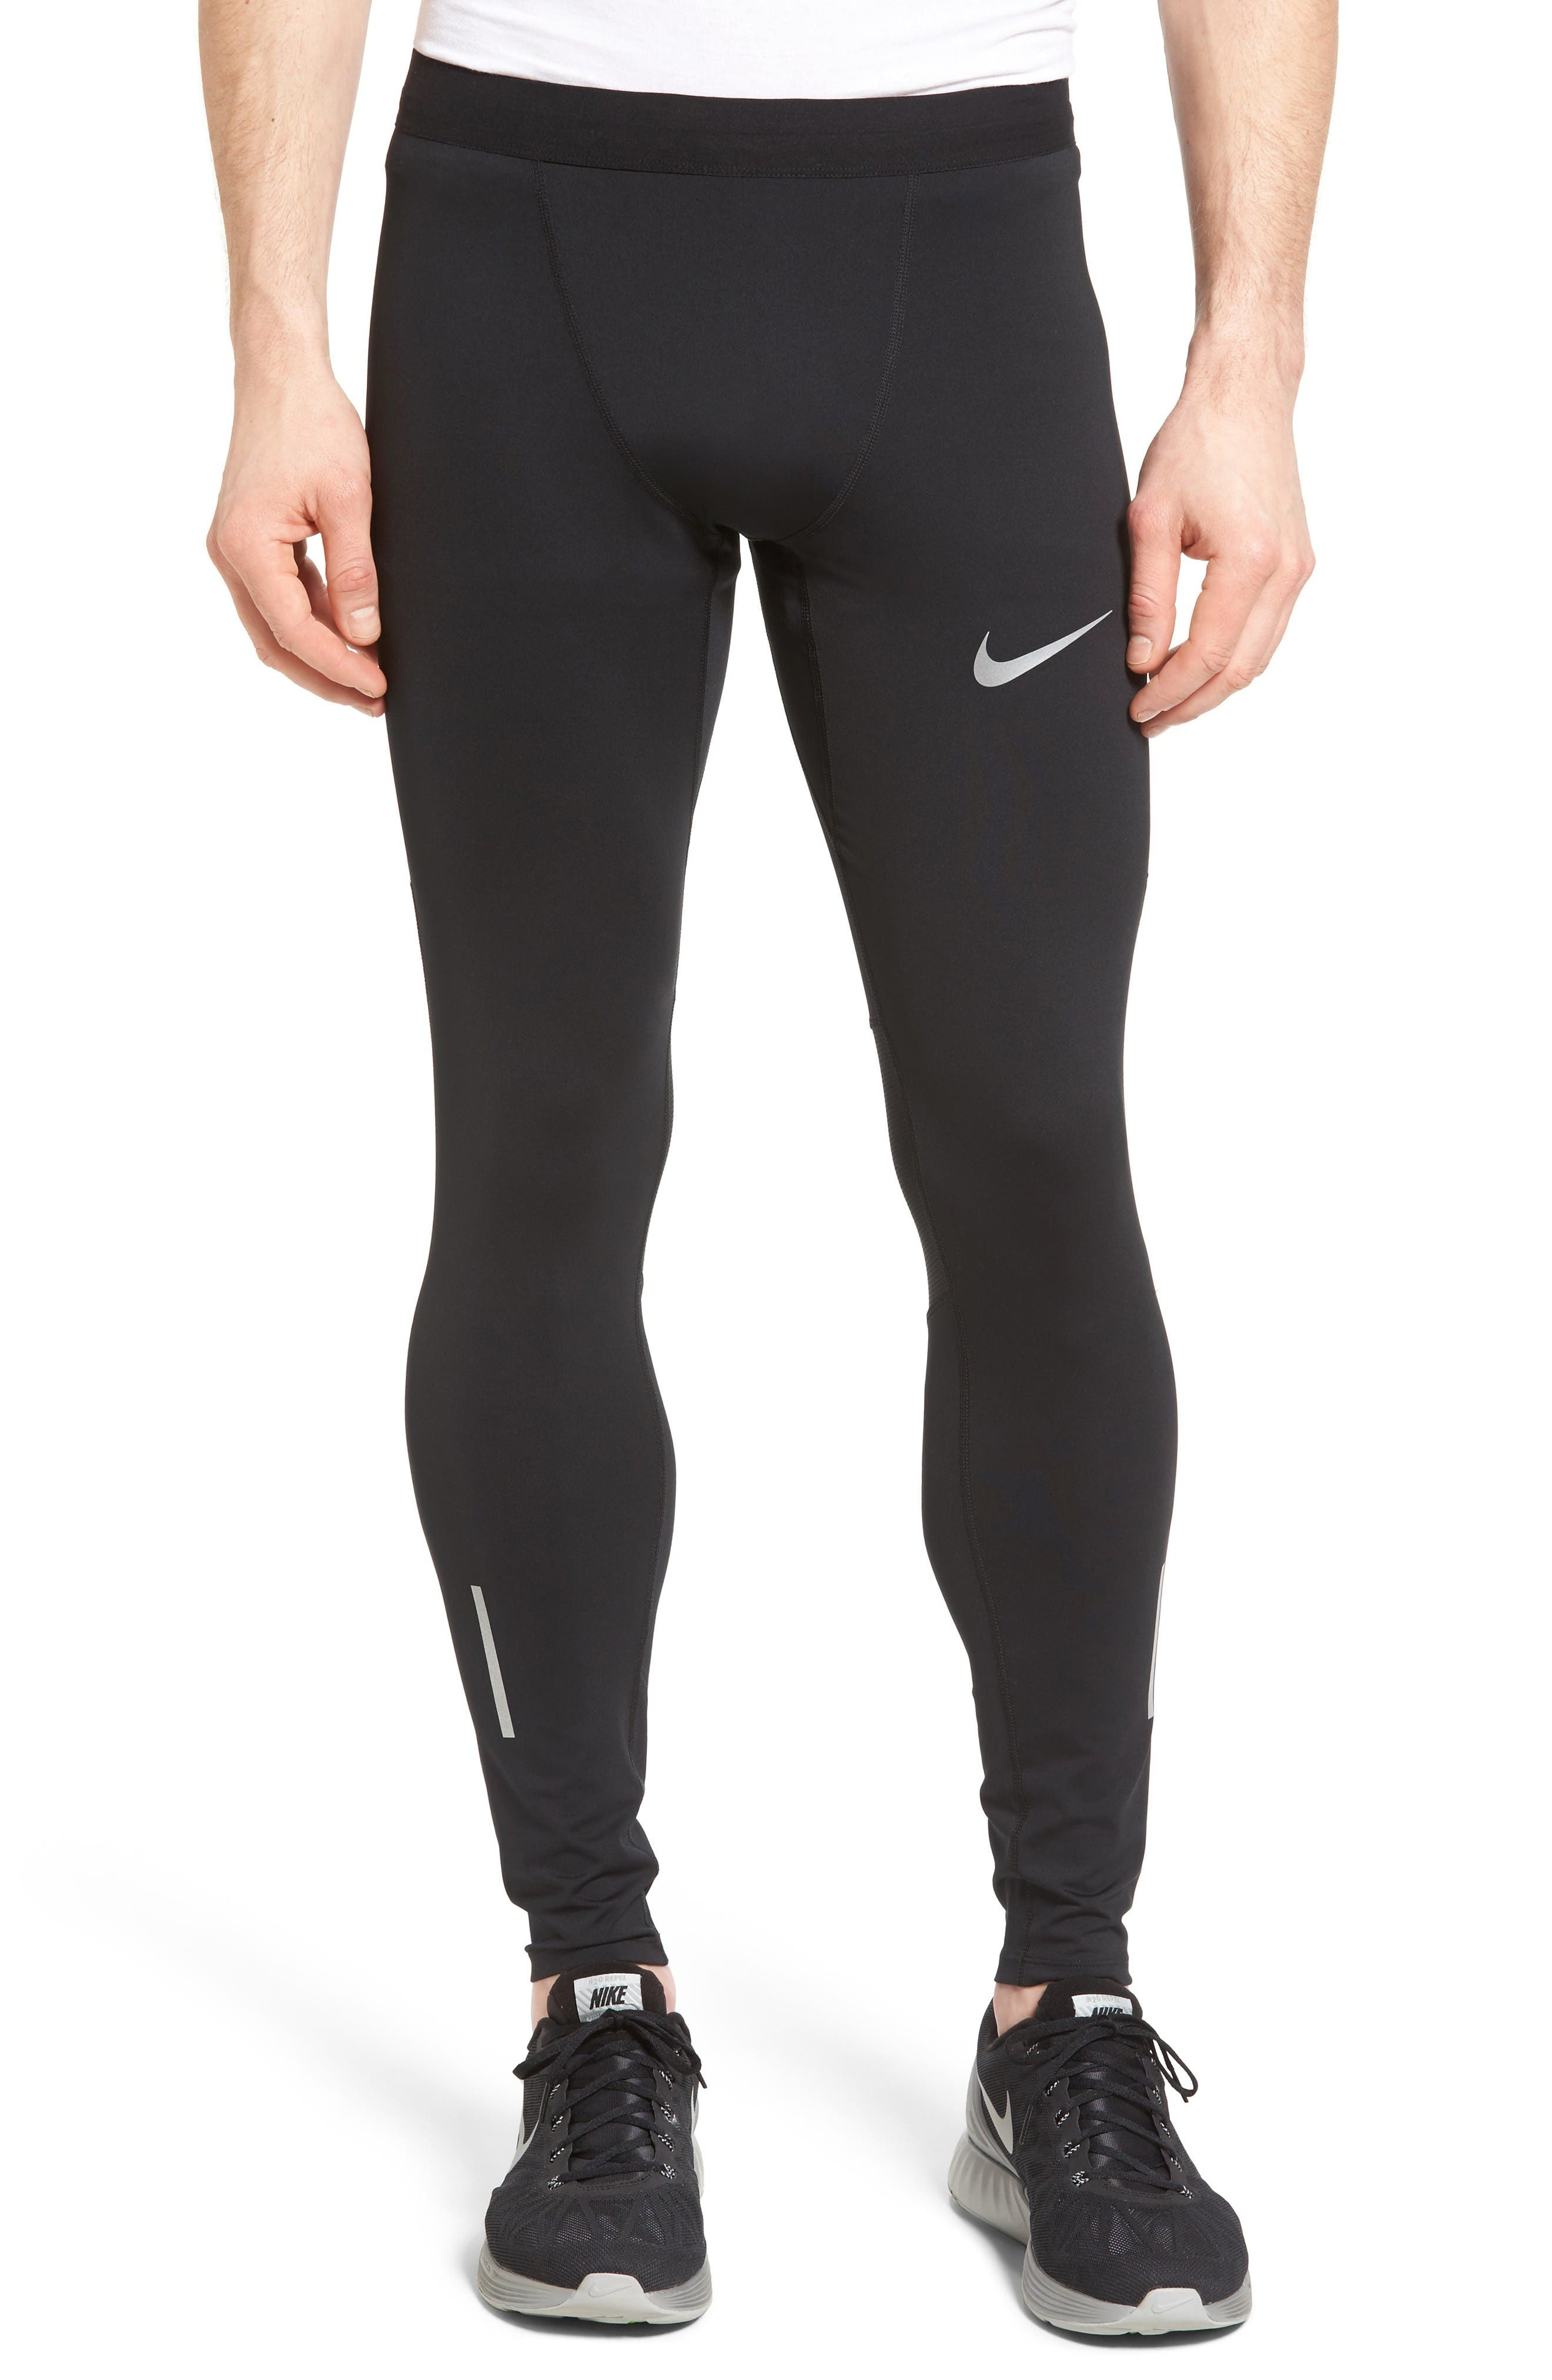 Alternate Image 1 Selected - Nike Power Tech Running Tights